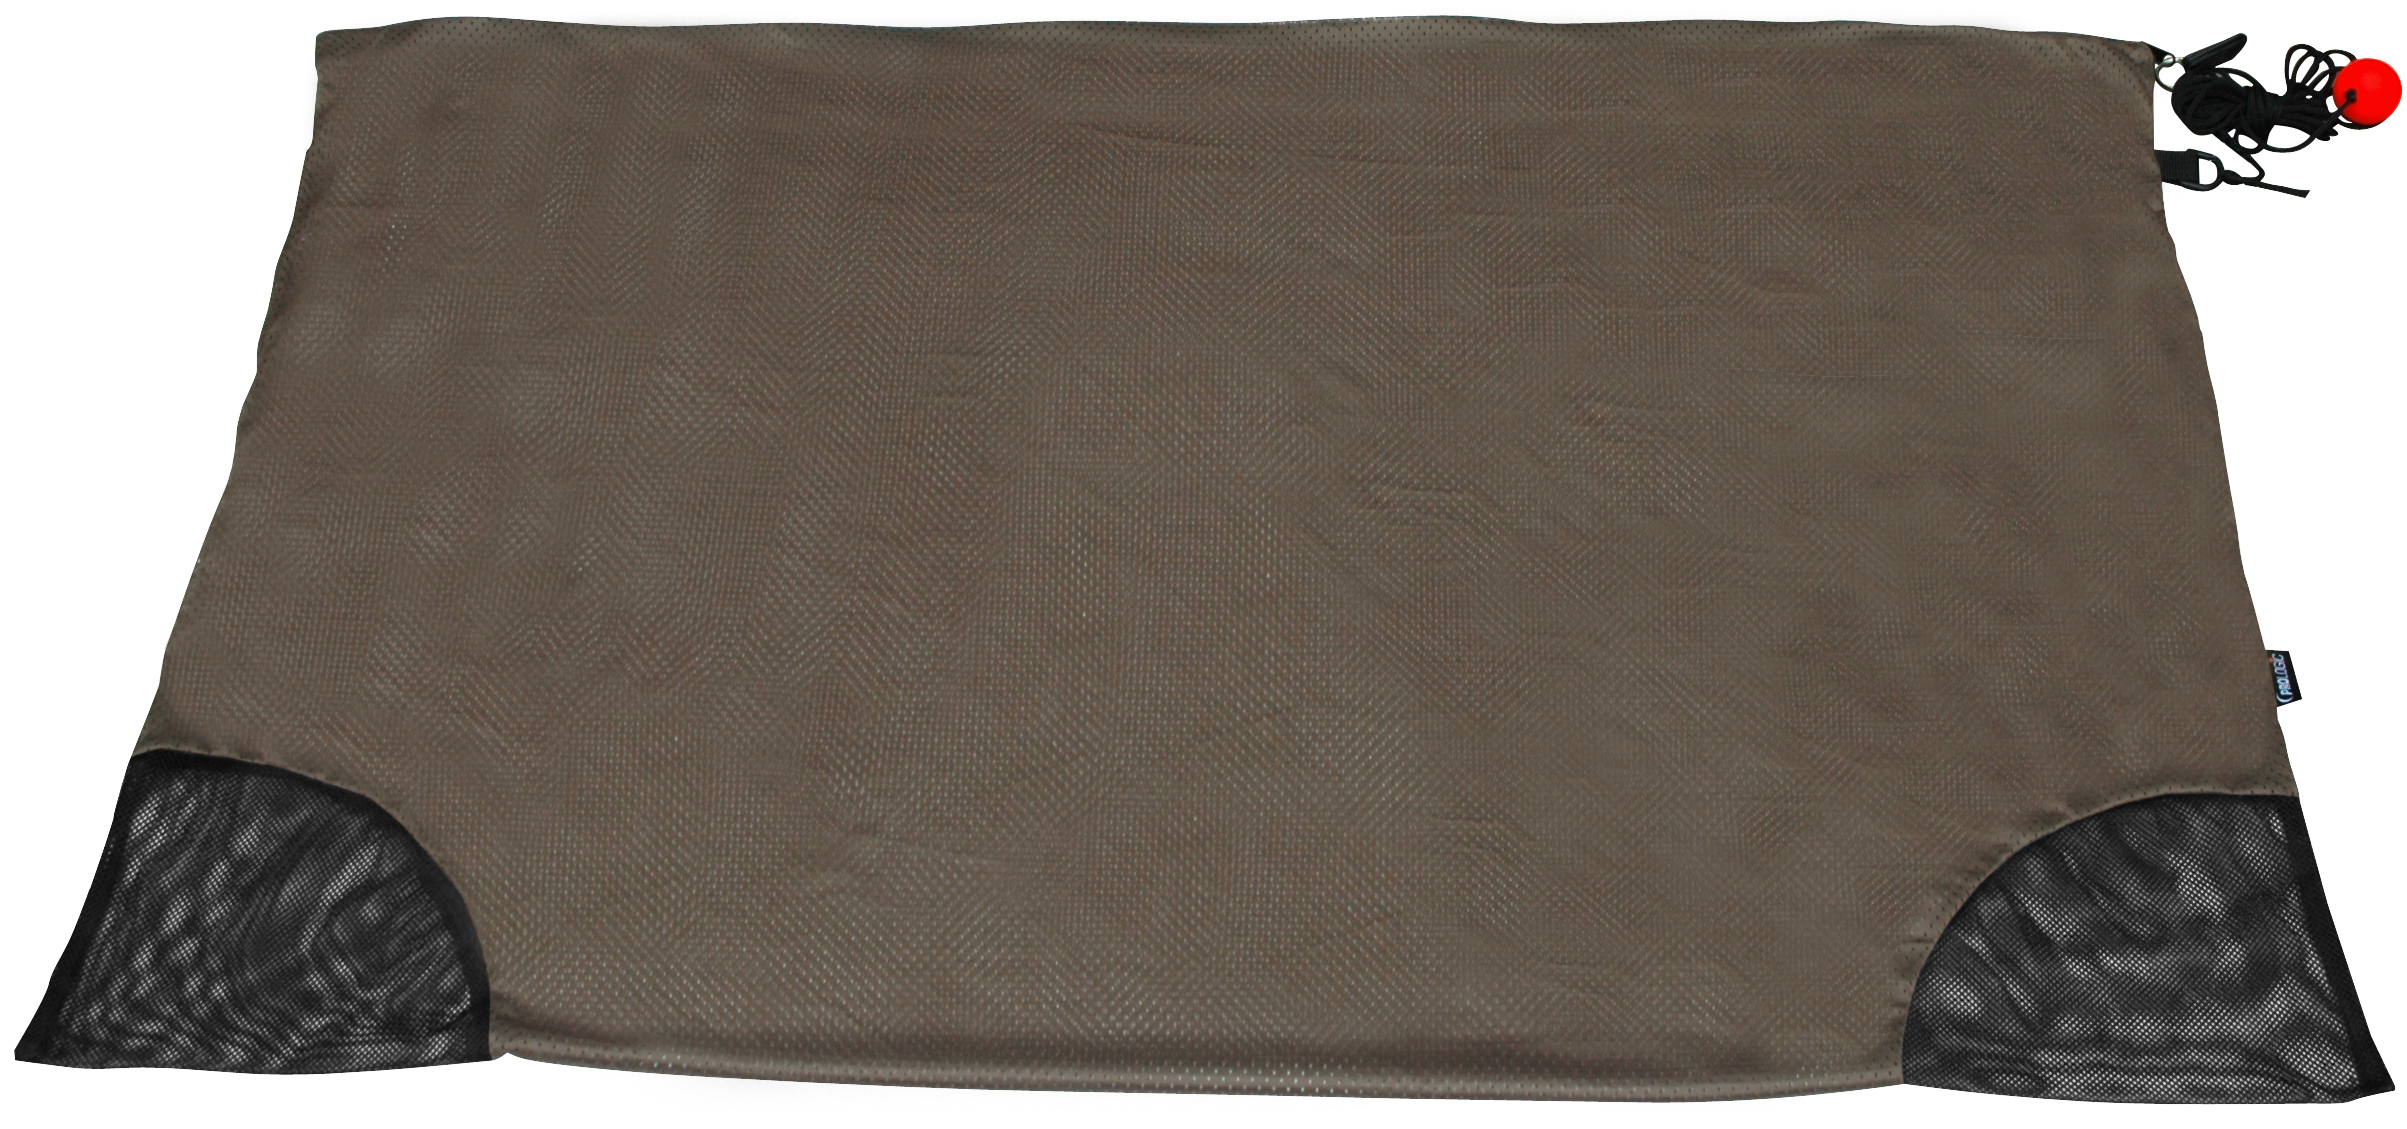 sak na ryby Prologic New Green Carp Sack XL (120x80cm)